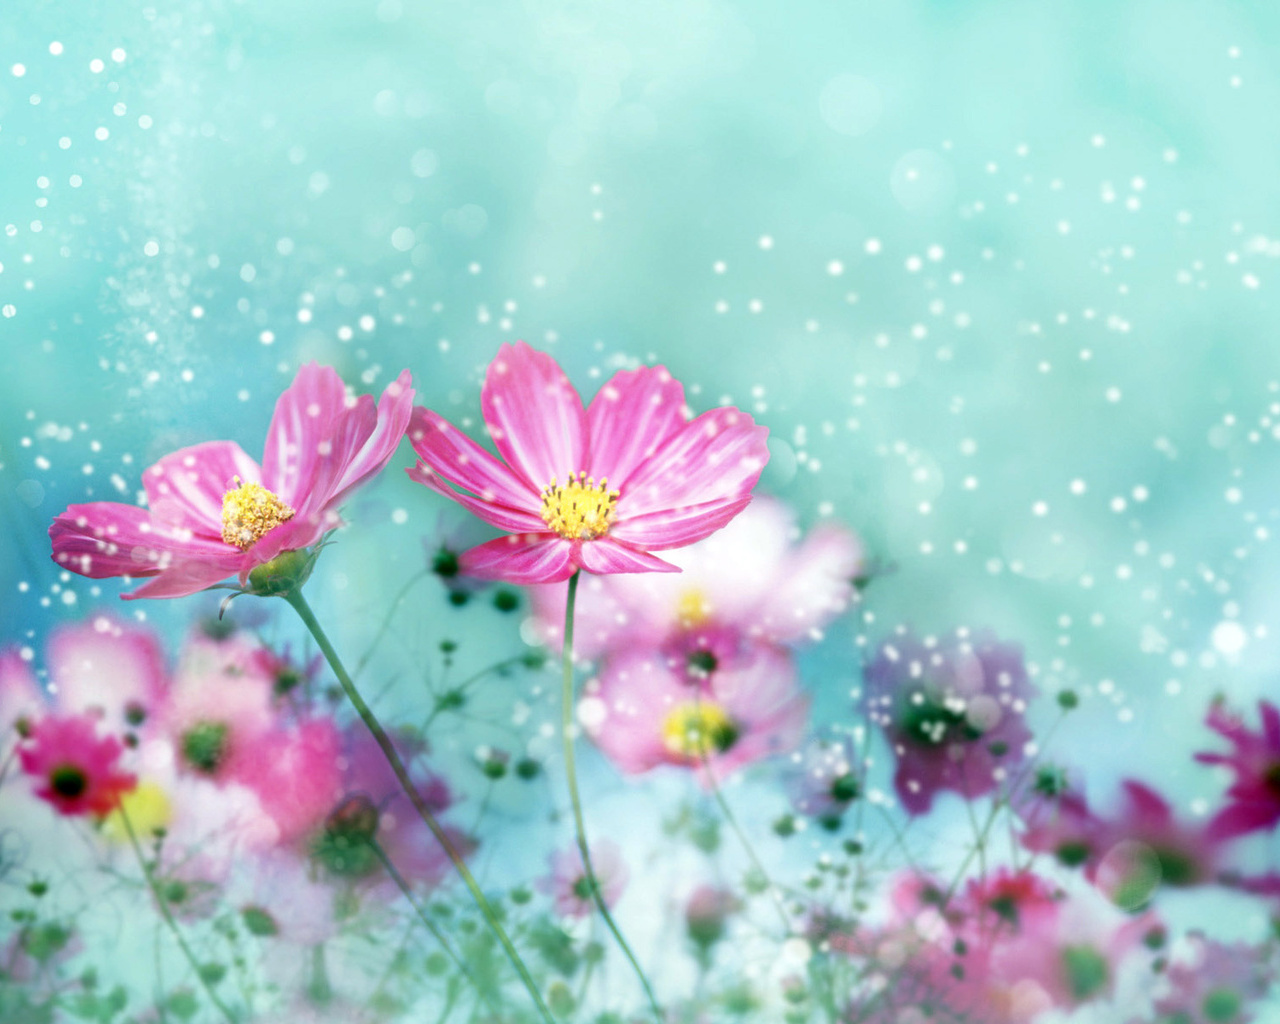 Colorful Flower Blossoms Wallpapers HD Wallpapers 1280x1024